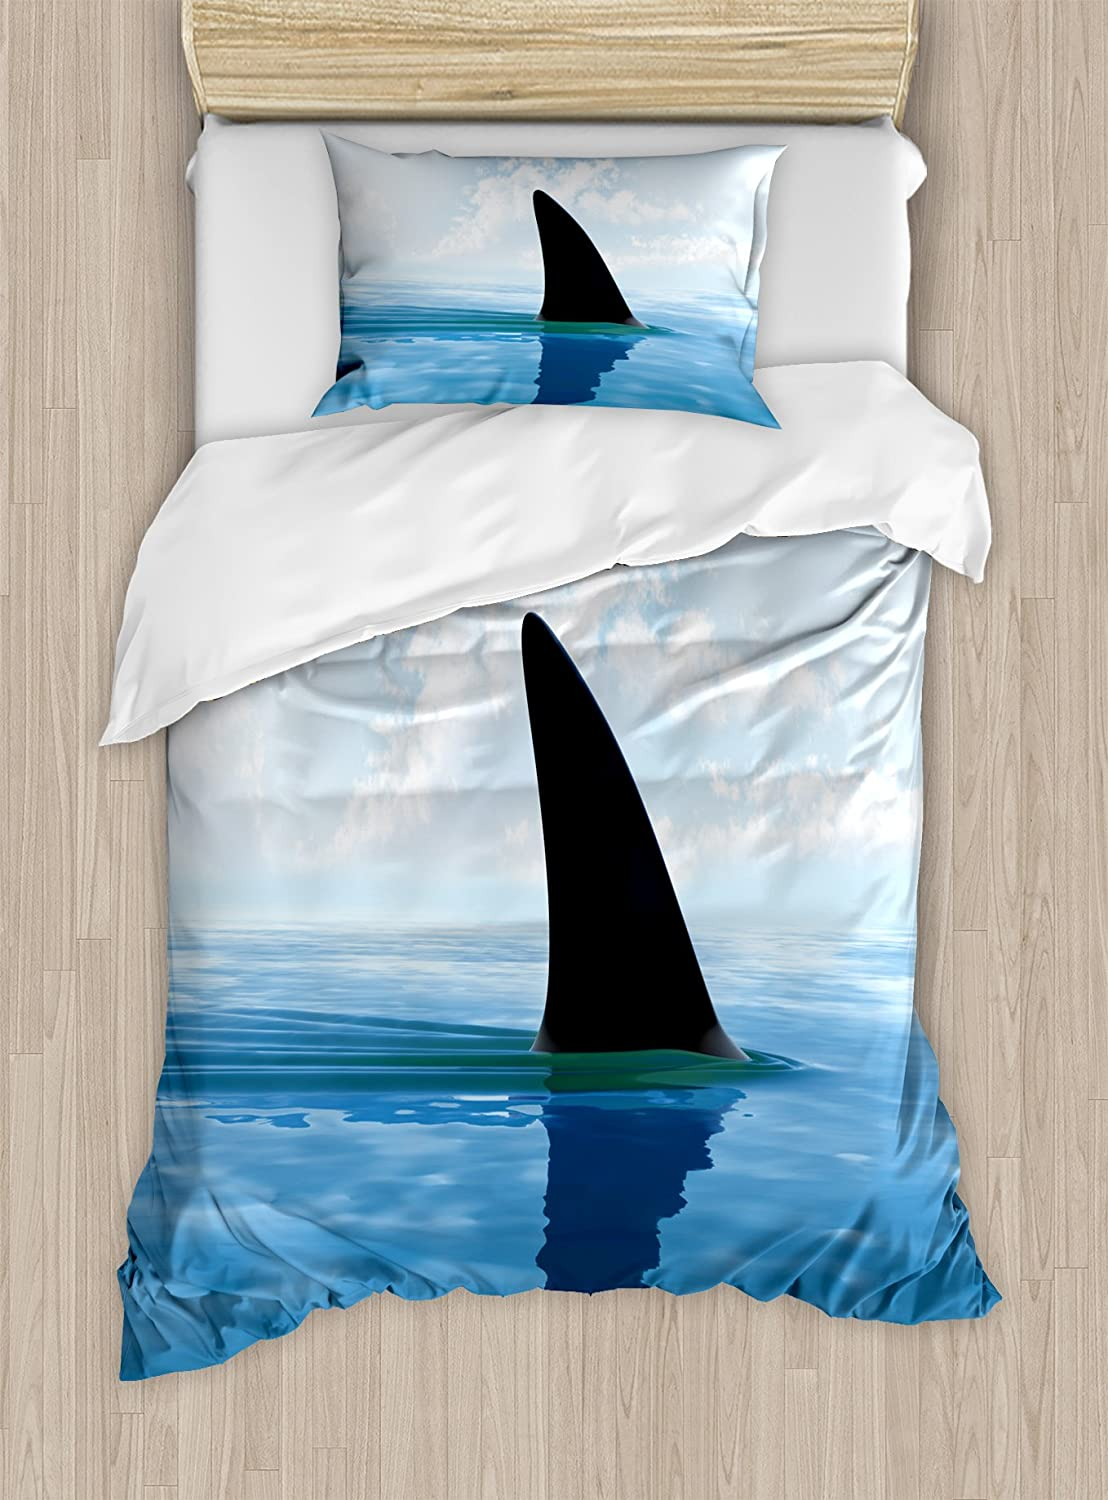 Ambesonne Shark Duvet Cover Set, Shark Fish Fin Over The Sea Surface Danger Caution Themed Picture, Decorative 2 Piece Bedding Set with 1 Pillow Sham, Twin Size, Blue